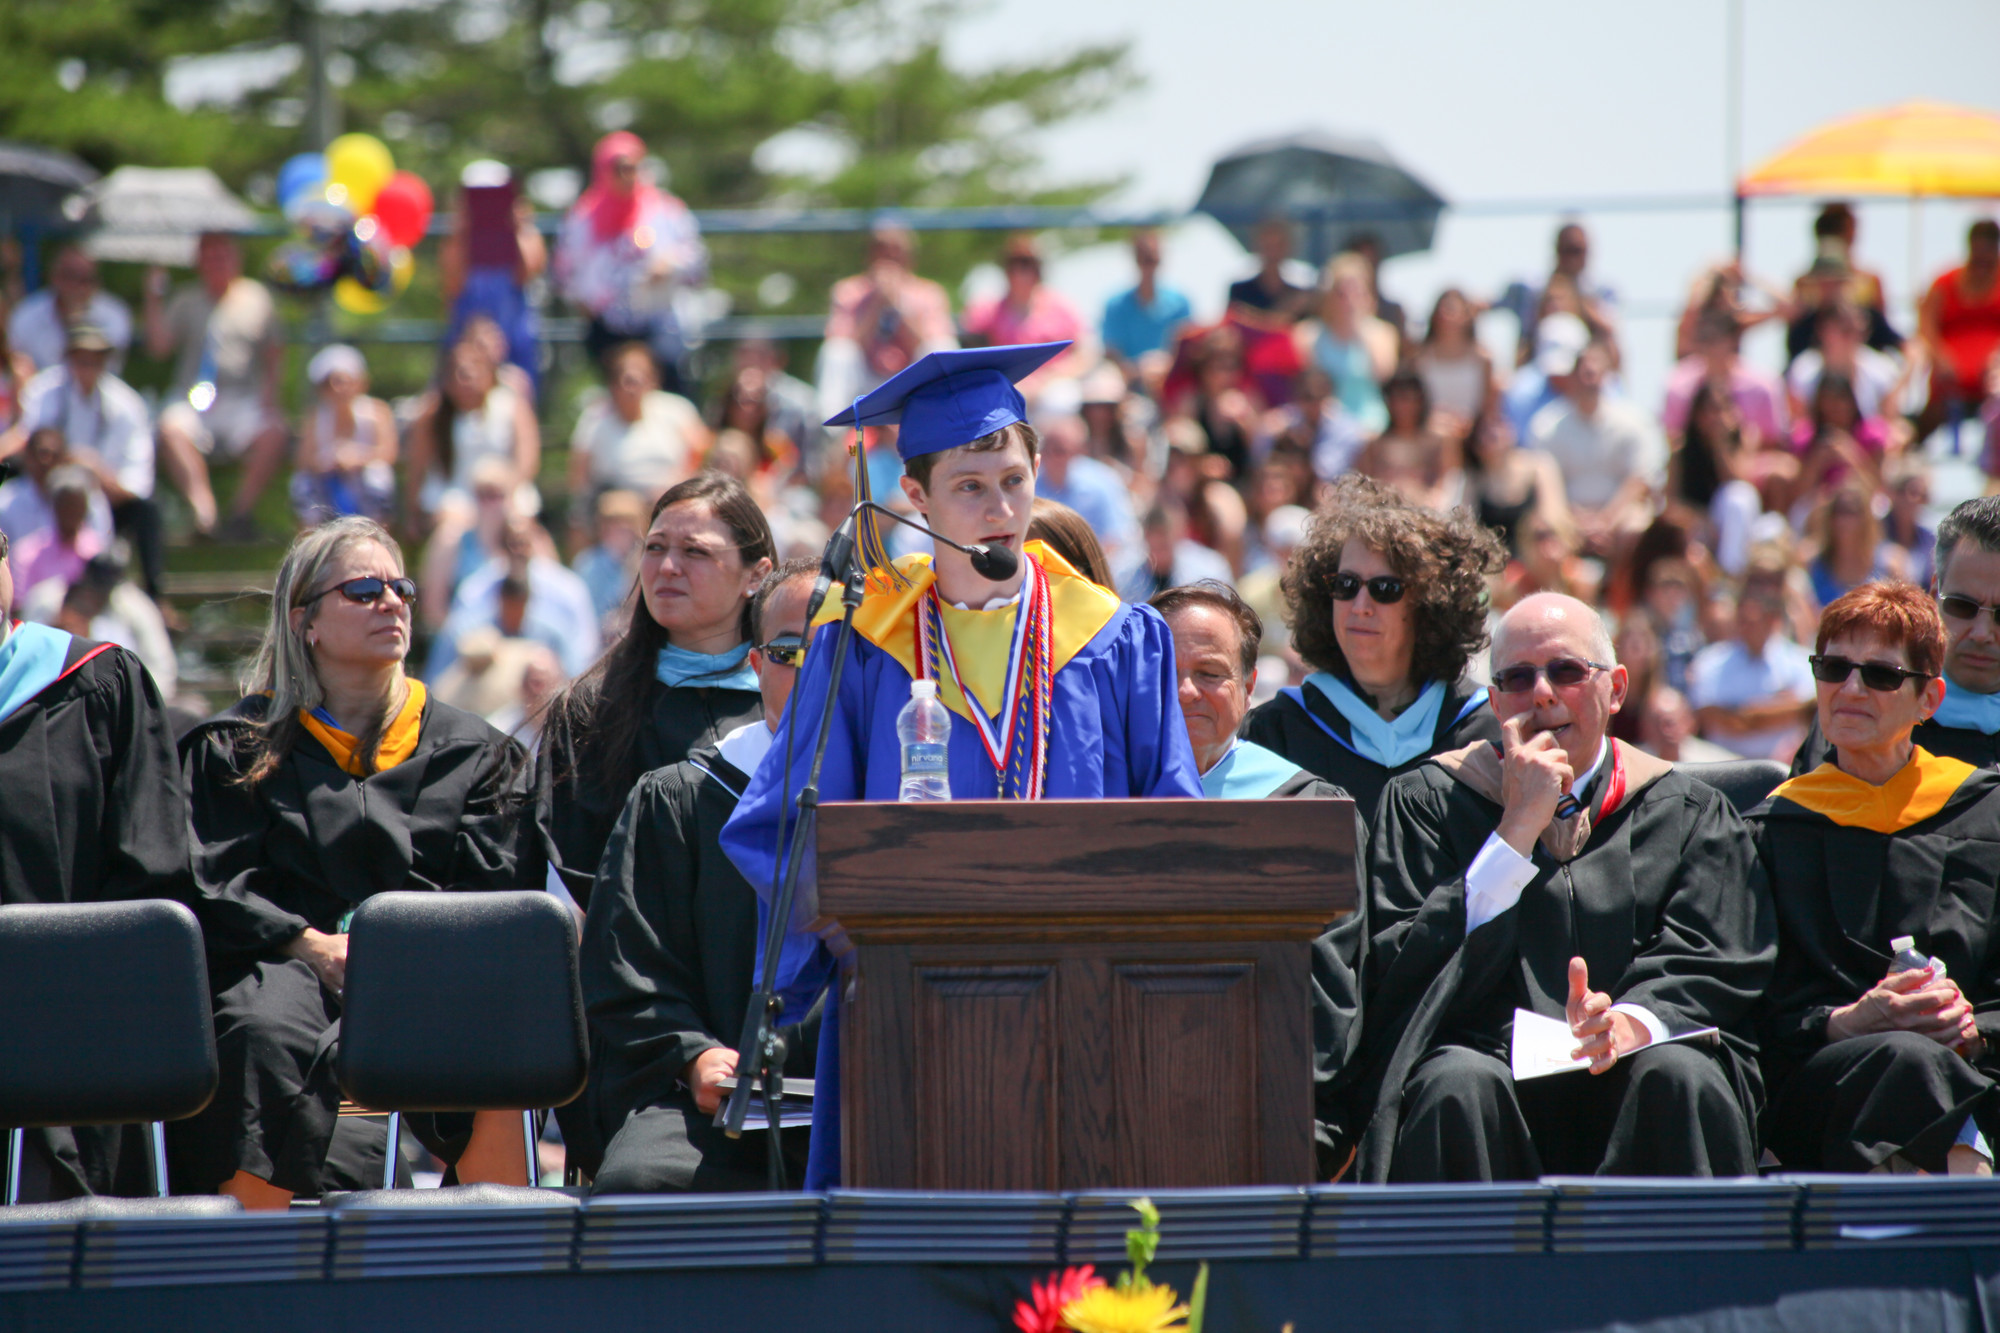 Valedictorian Nathan Siegelaub addressed students, parents and faculty at the ceremony.